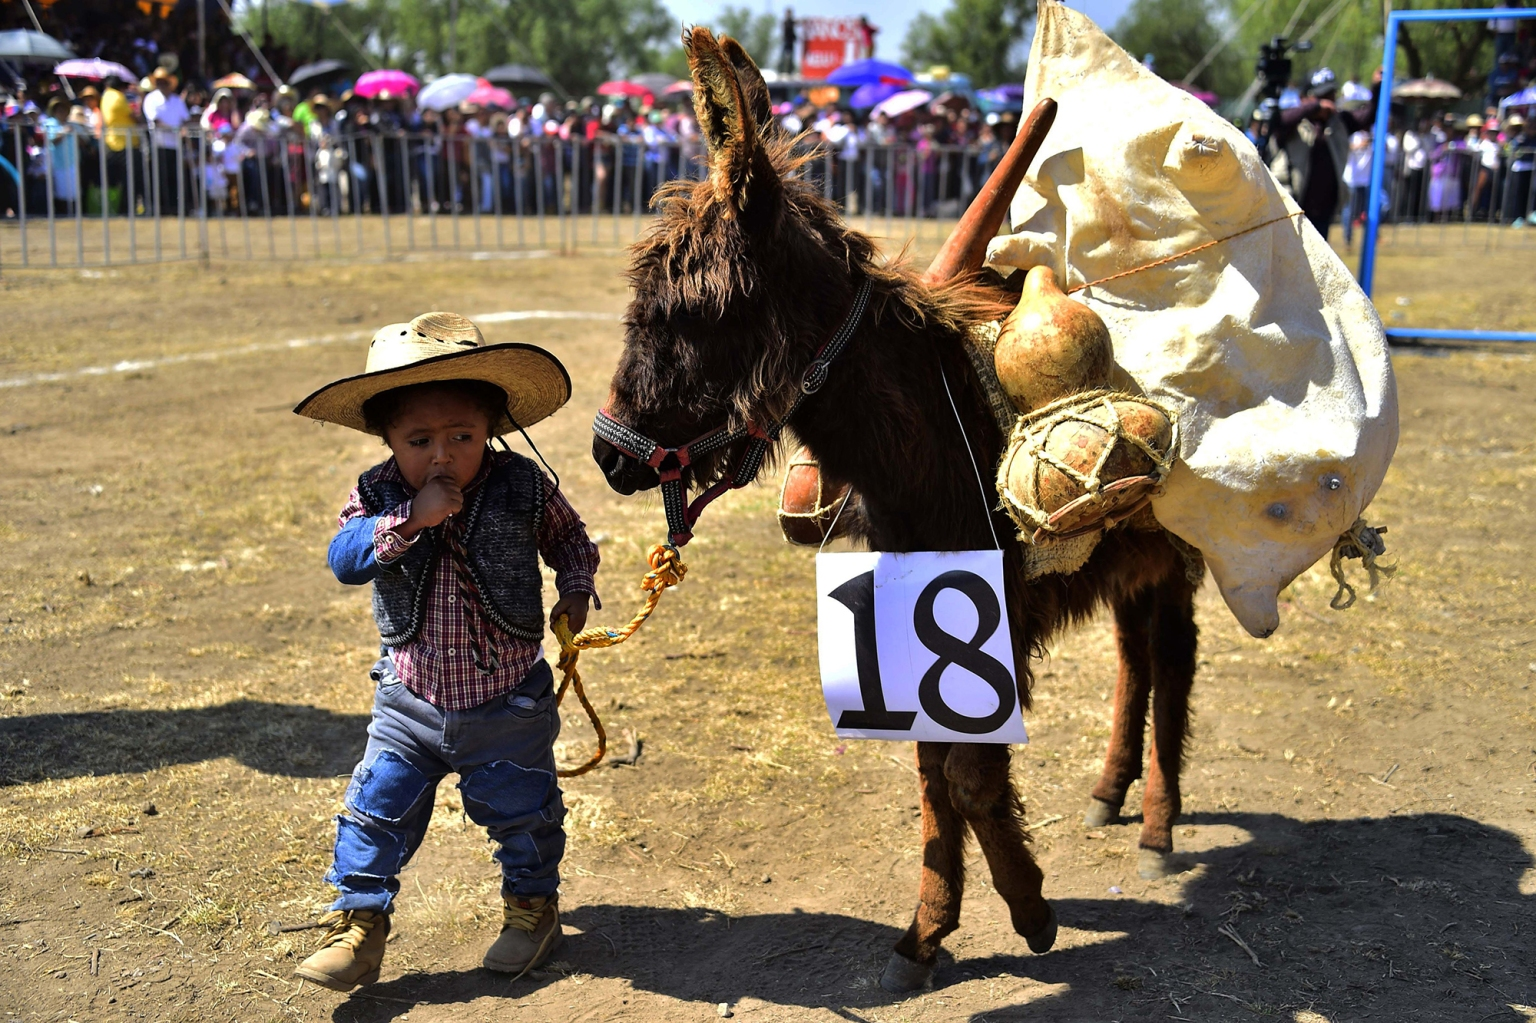 A donkey is presented during the National Donkey Fair in Otumba, Mexico, on May 1. The fair brings together about 7,000 people in what participants consider a day off for the cargo animal, but animal rights activists have questioned as a cruel ritual in which the donkeys are painted, whipped, ridden by grown men, and sometimes given alcohol. PEDRO PARDO/AFP/Getty Images